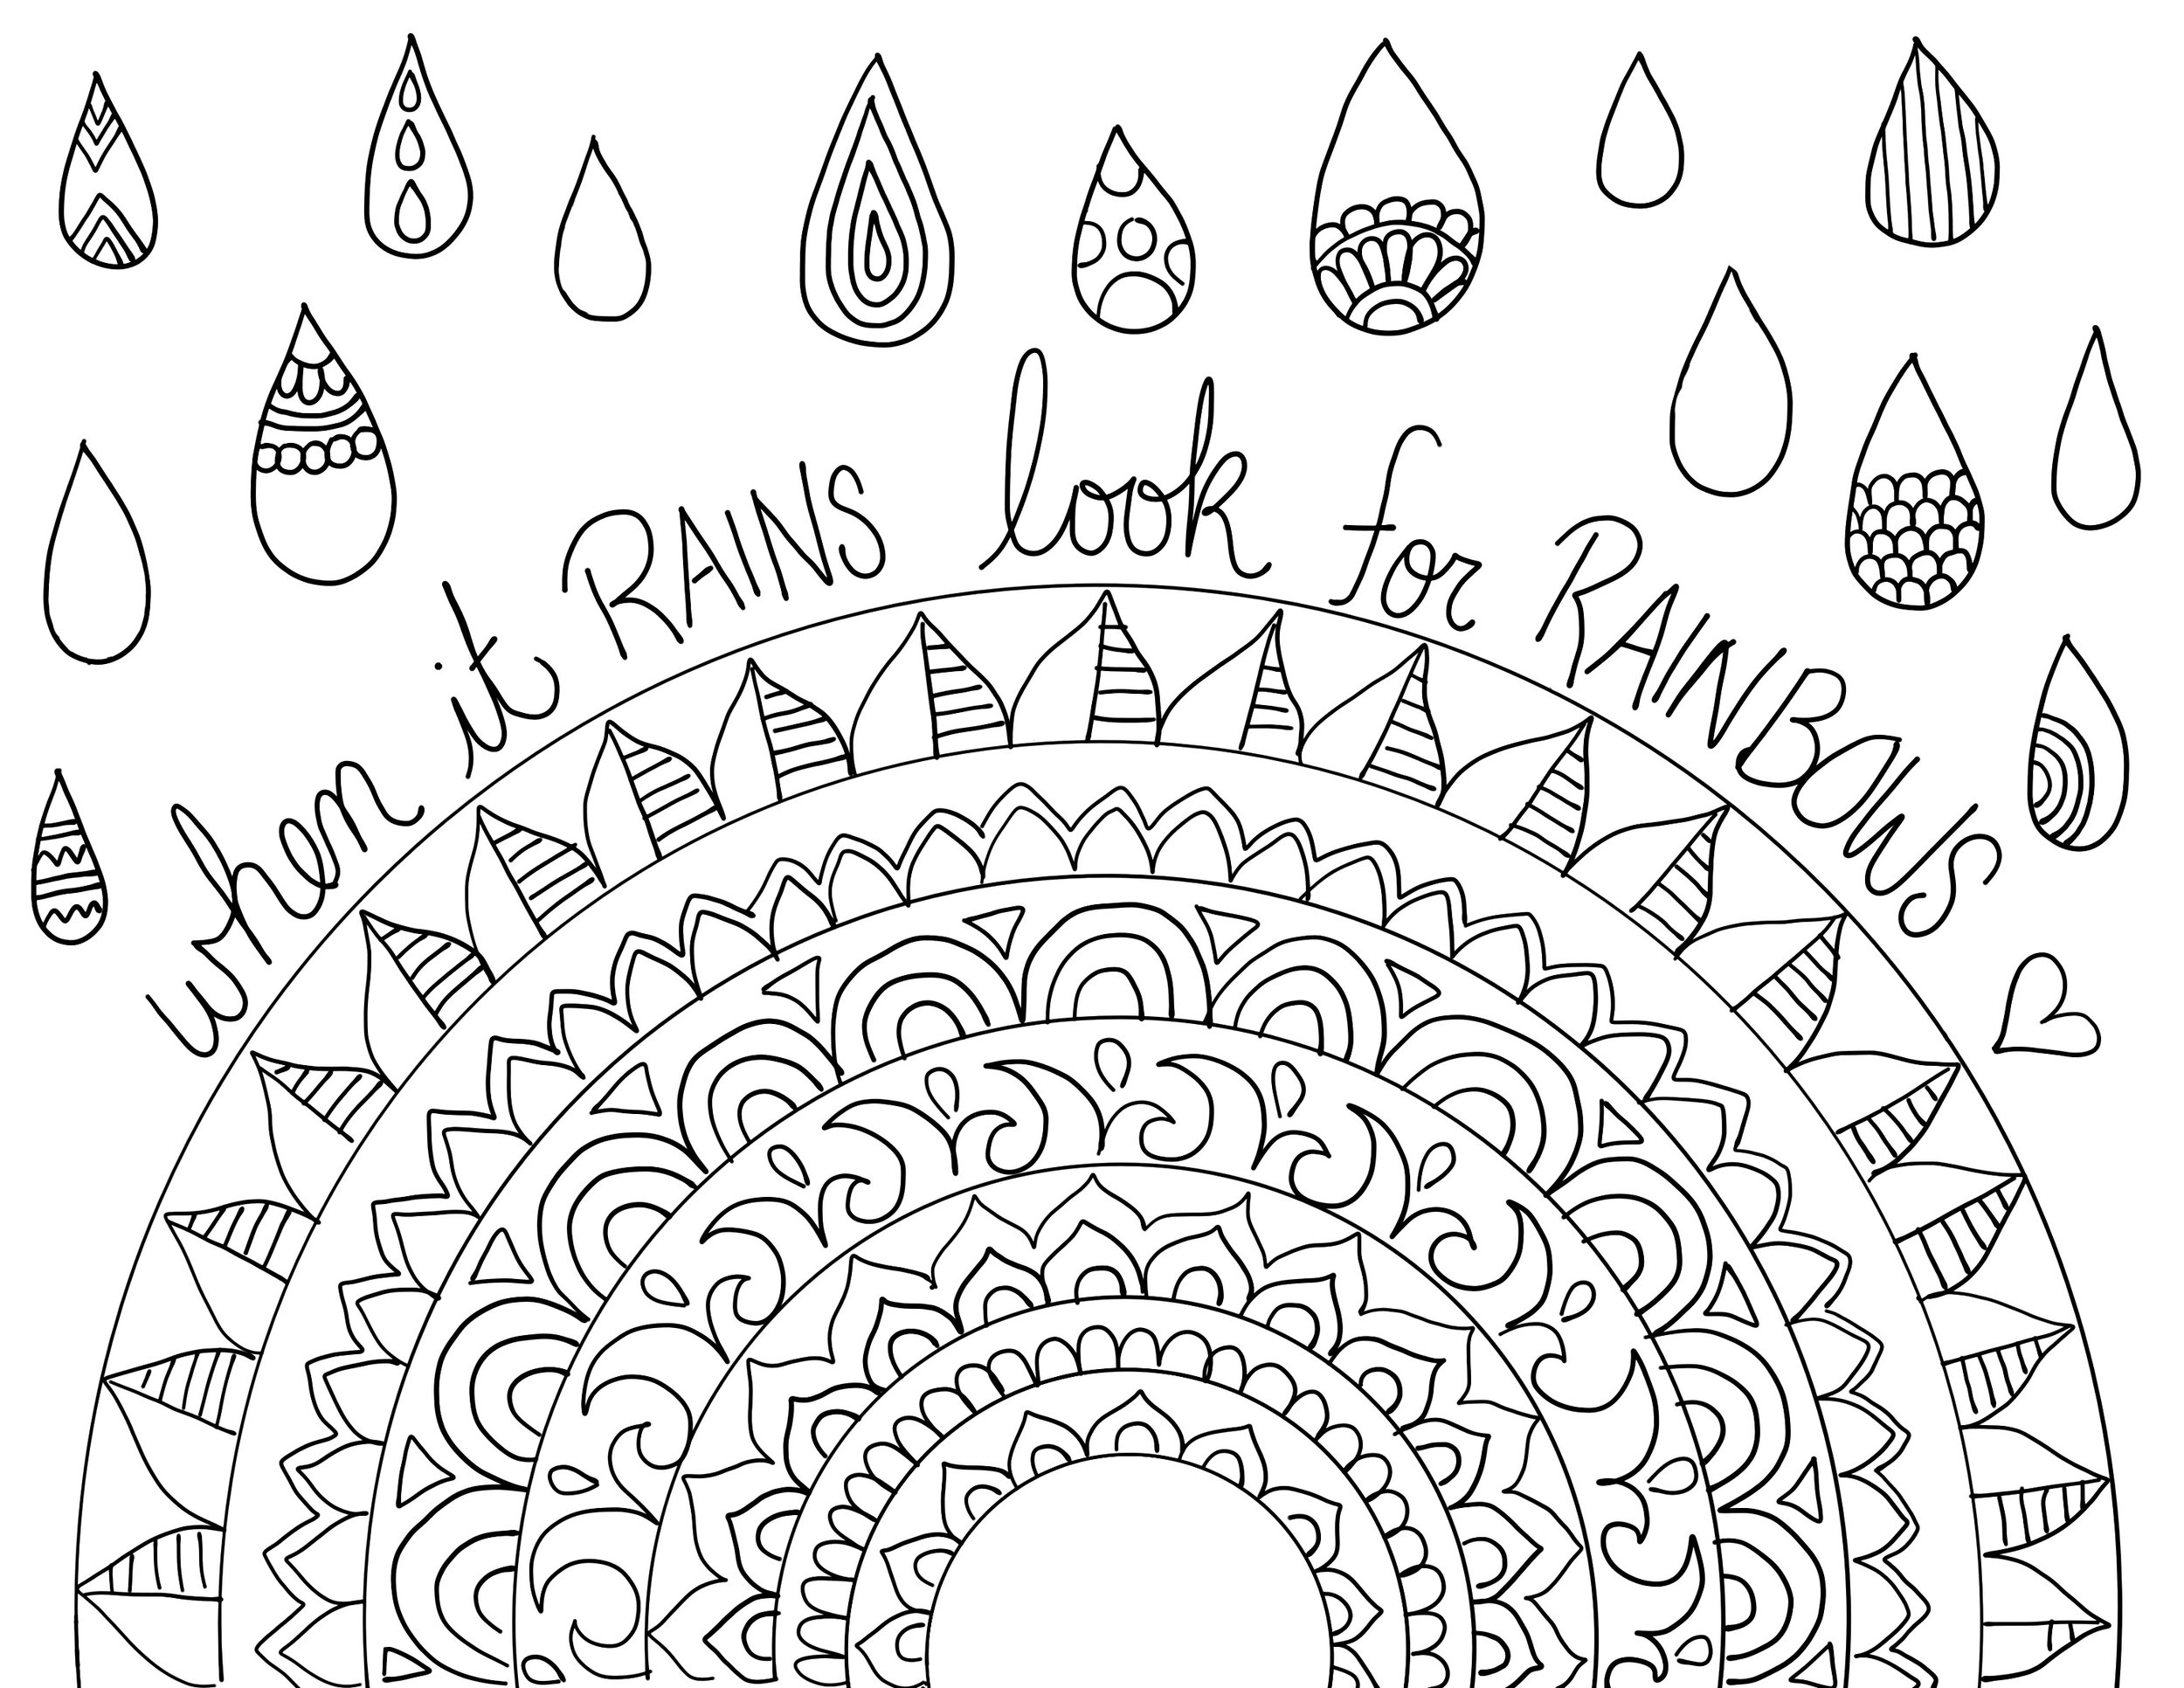 When it rains coloring page.jpg